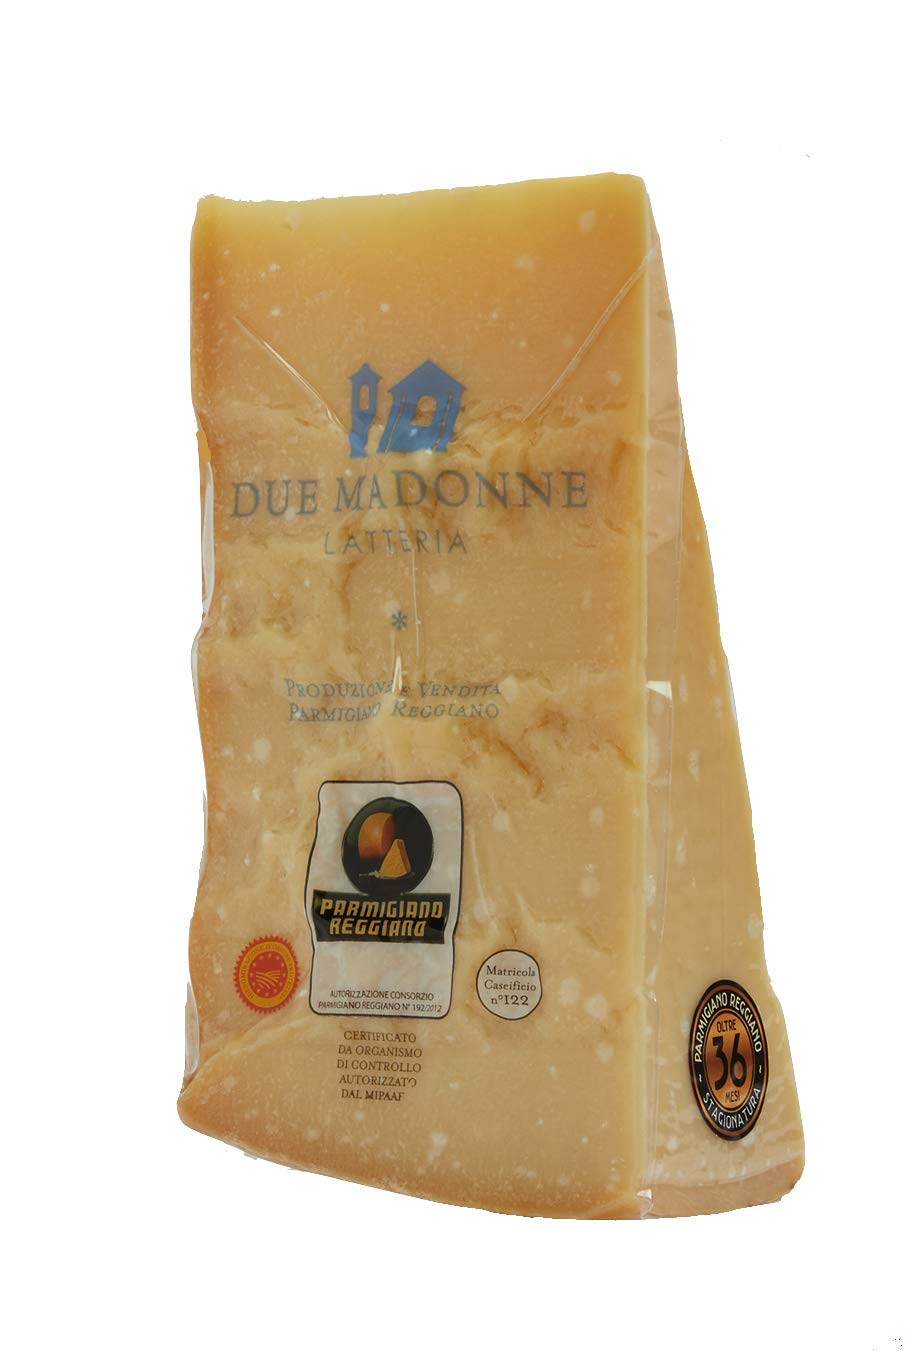 Parmigiano Reggiano (Parmesan Cheese) GMO Free 36 Months Aged PDO